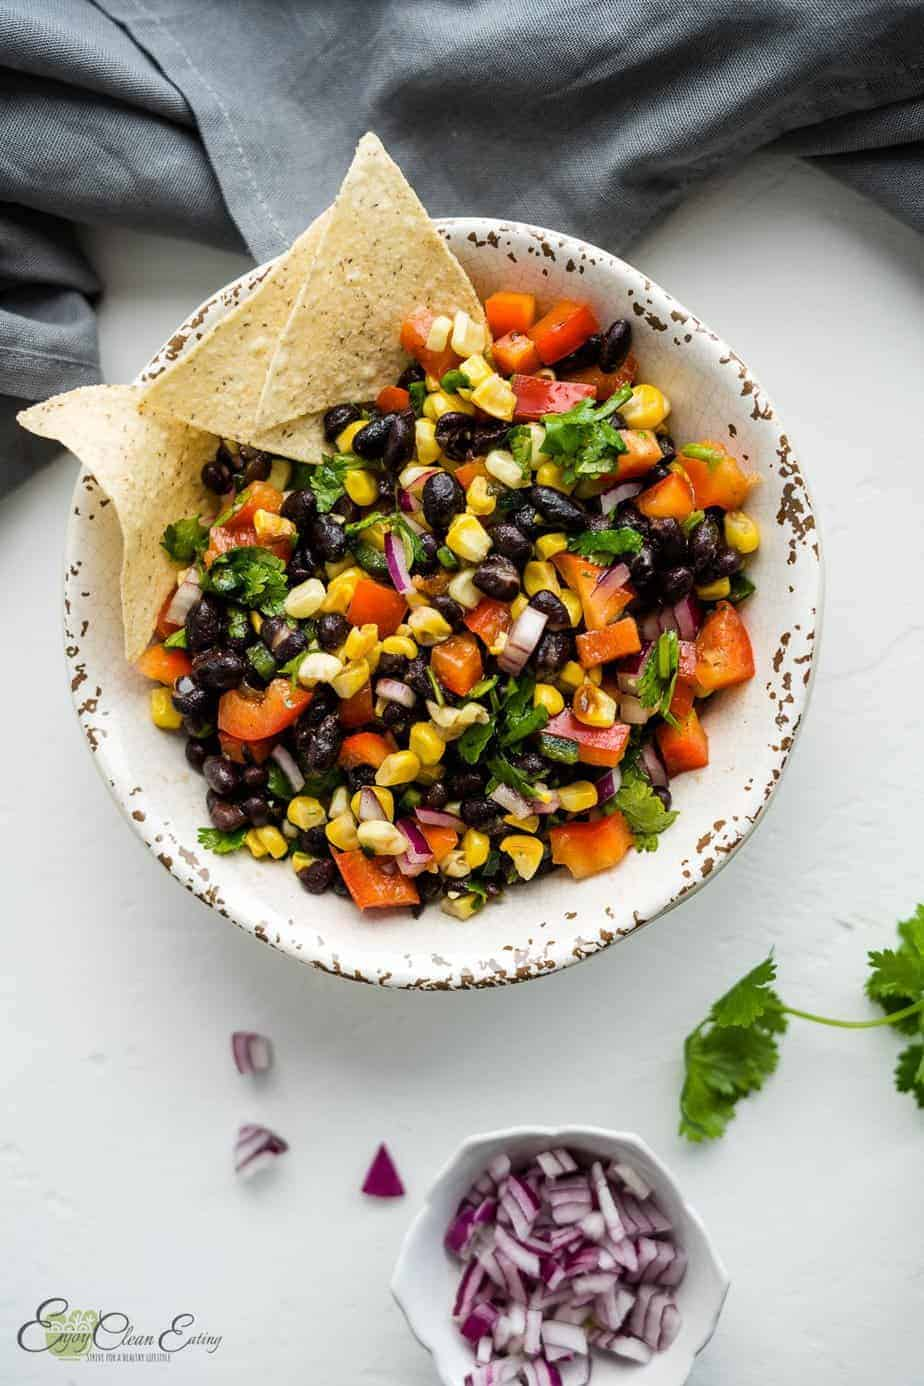 The salsa was serve with tortilla chips on the side there is chopped red onion in a white small bowl, cilantro and some chips on the side.